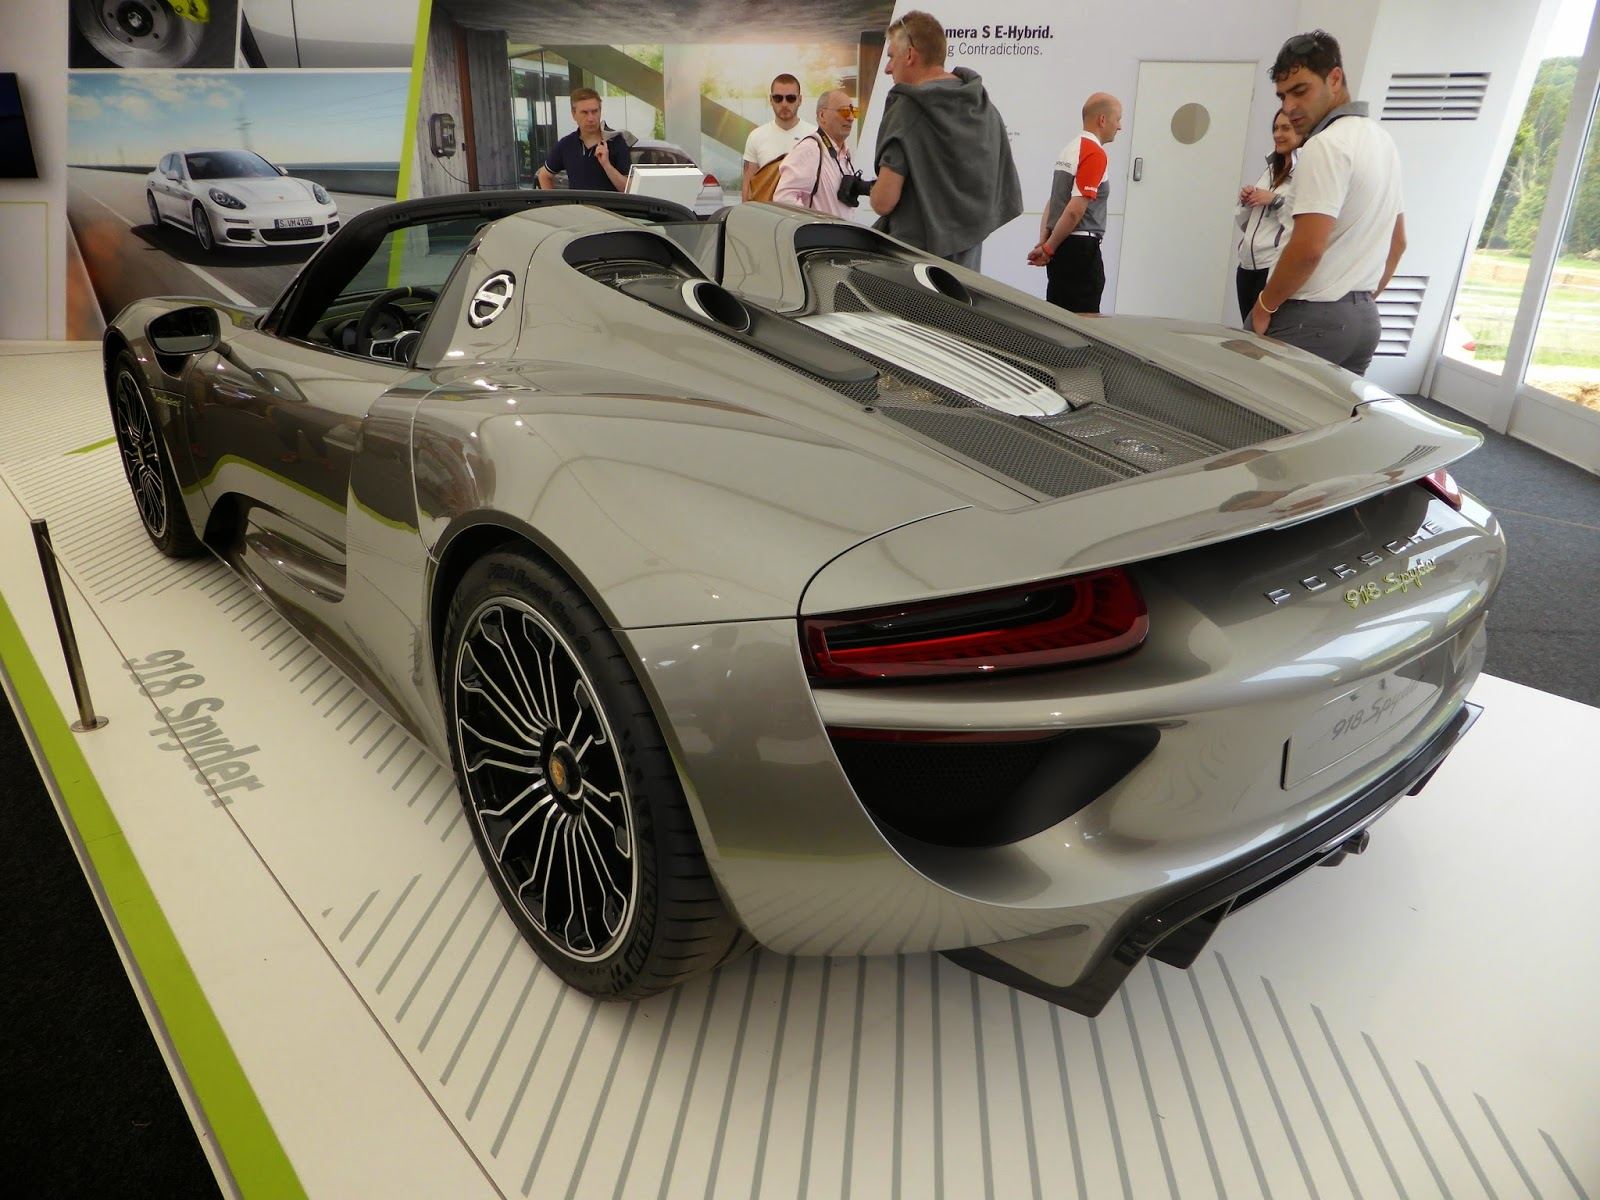 Porsche 918 Spider at Goodwood